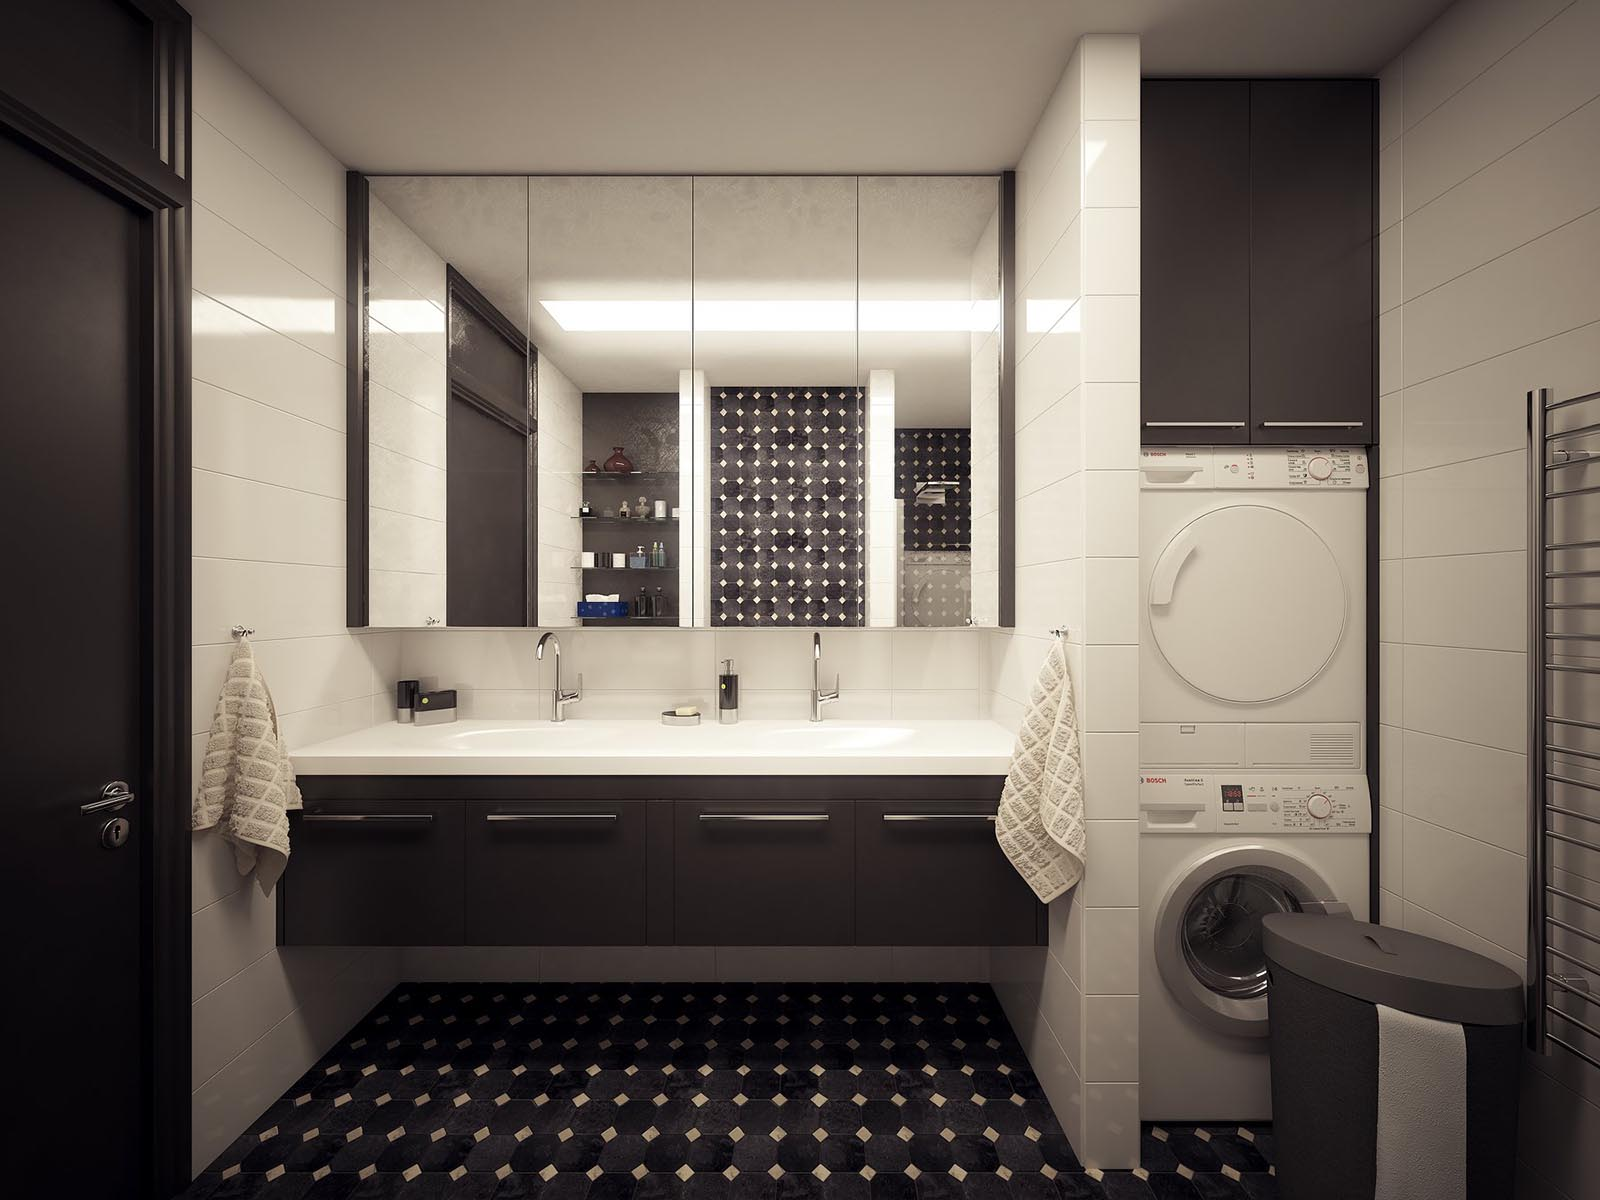 3D Visualization of a Modern bathroom-2